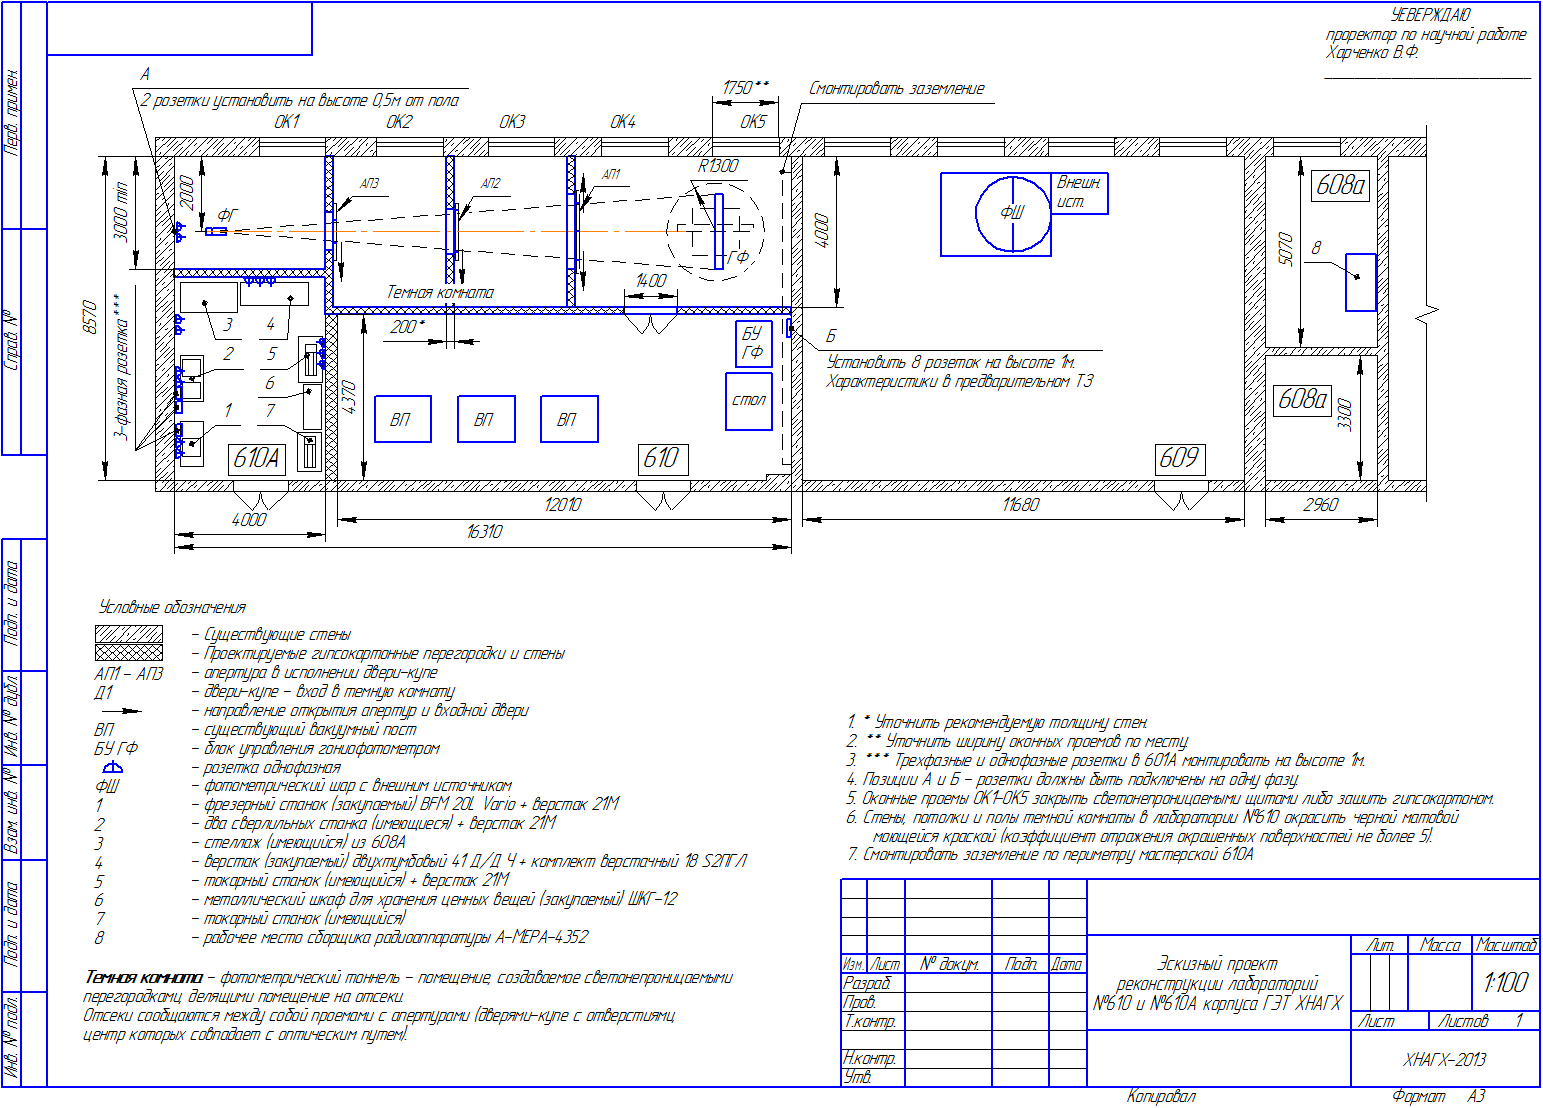 Floor plan with dark room